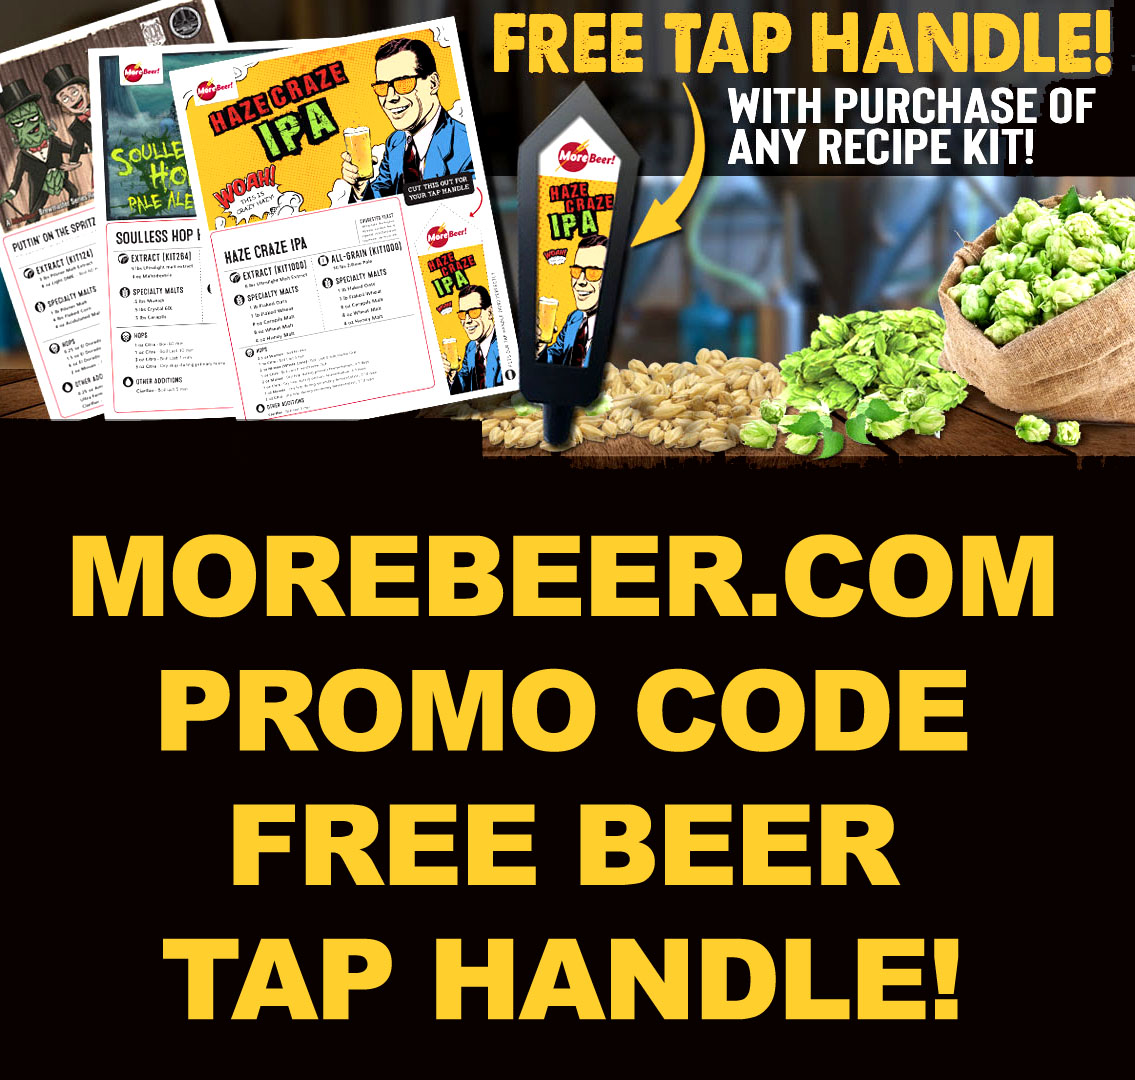 Get A Free Tap Handle With Purchase Of Any Recipe Kit With This MoreBeer.com Promo Code Coupon Code